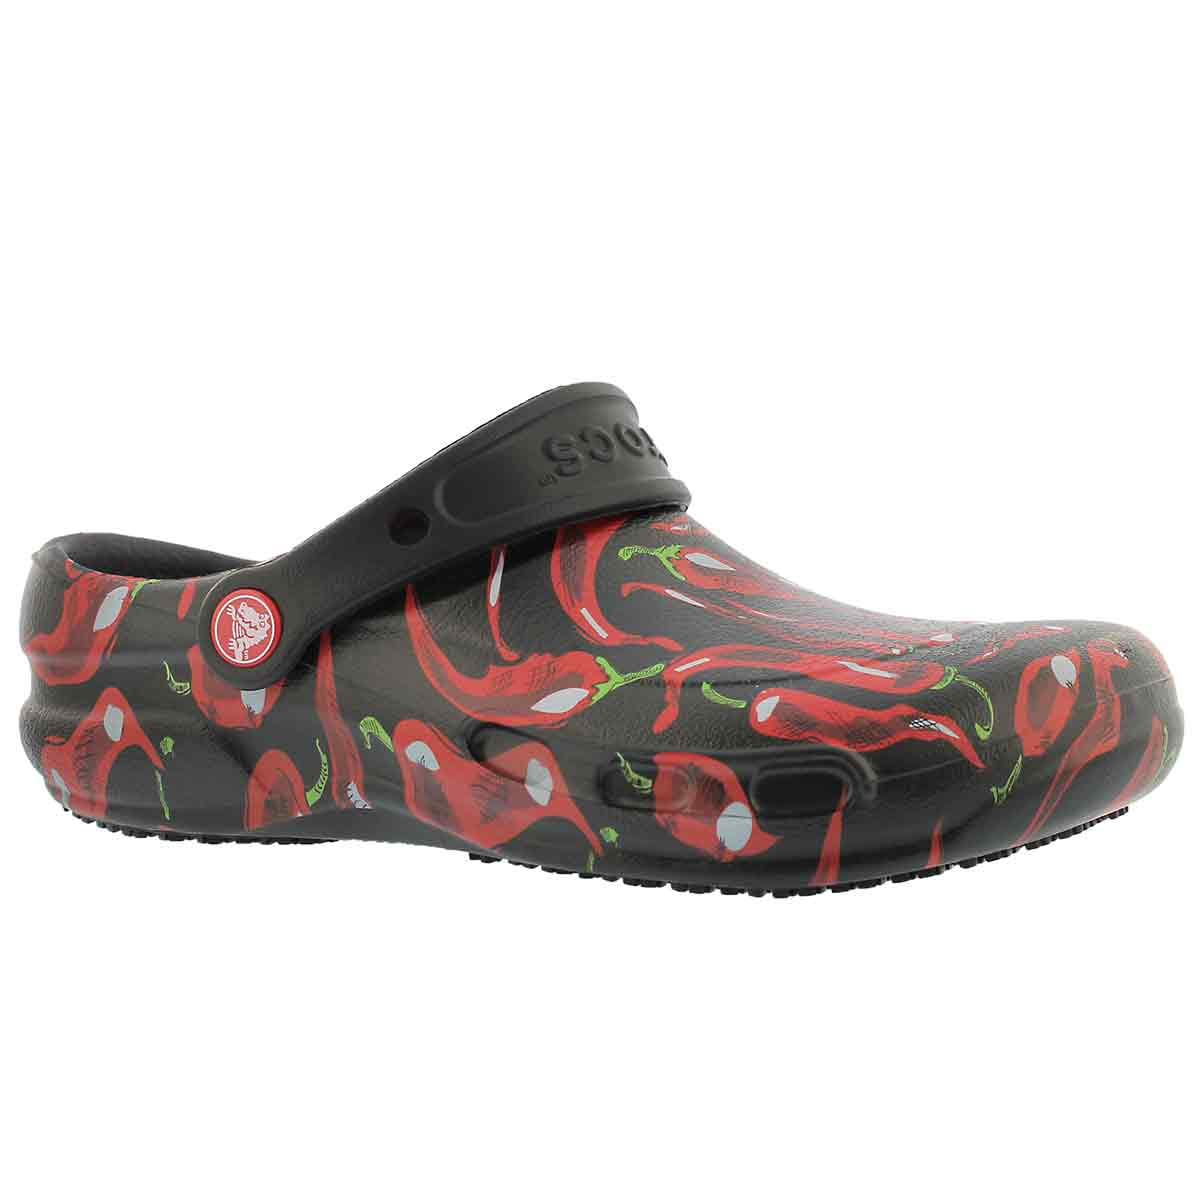 Unisex BISTRO PEPPERS black/red clogs